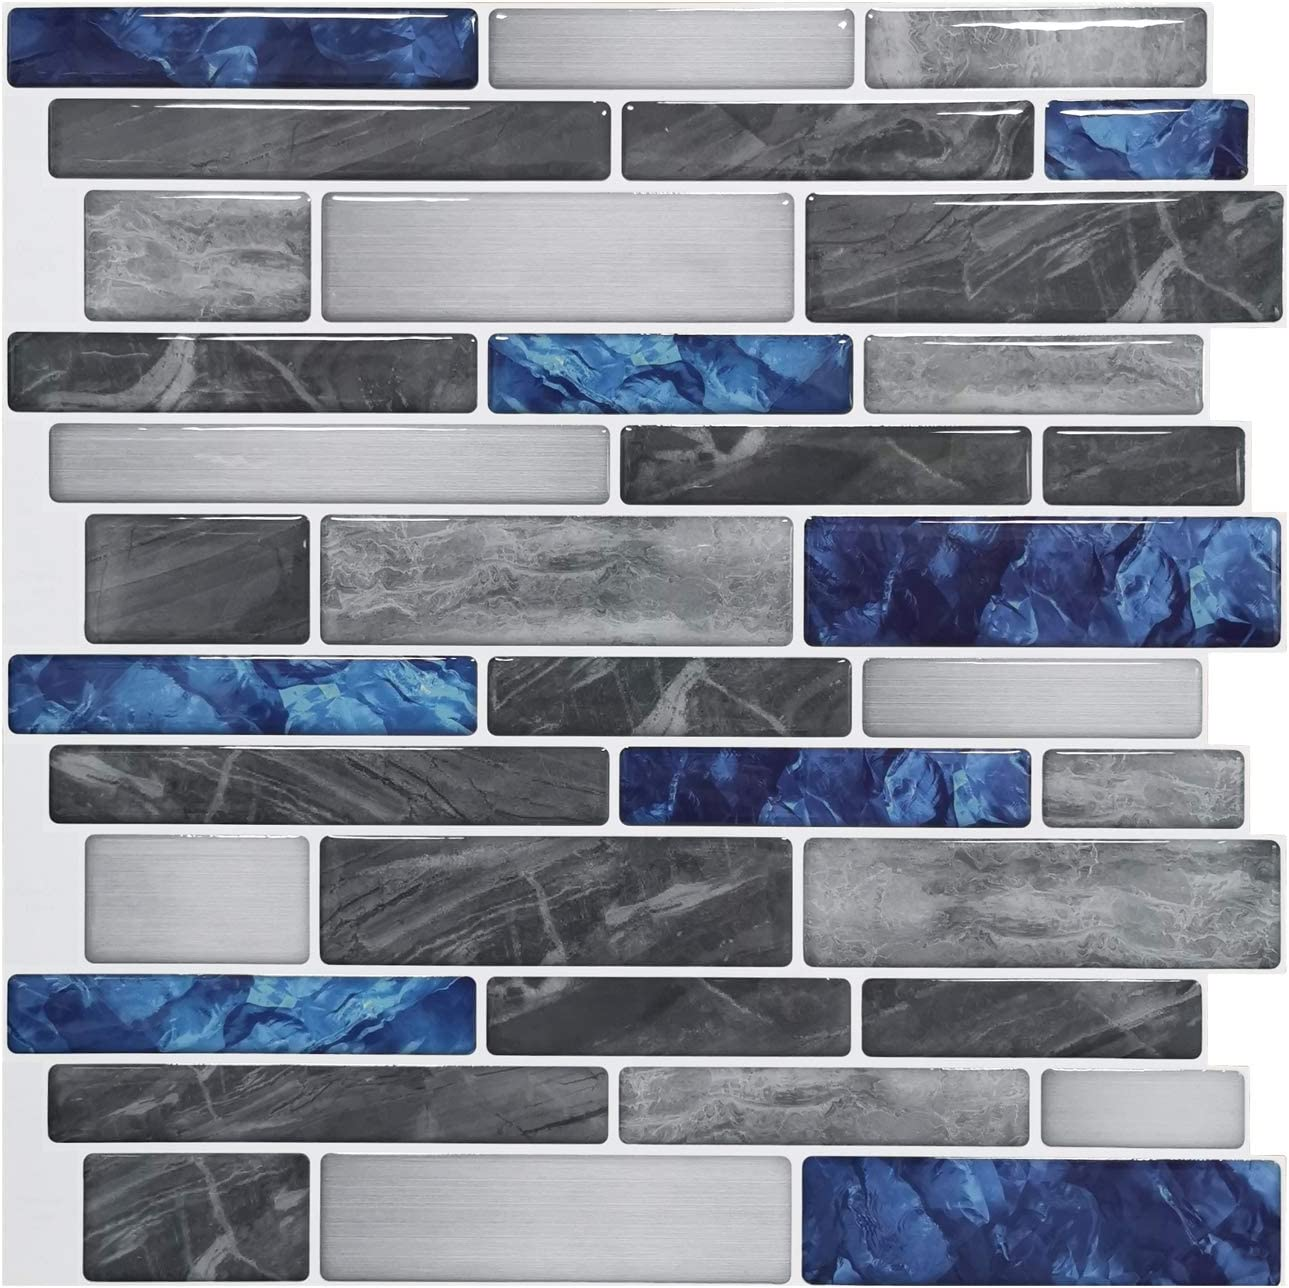 - Art3d 10-Sheet Premium Self-Adhesive Kitchen Backsplash Tiles In